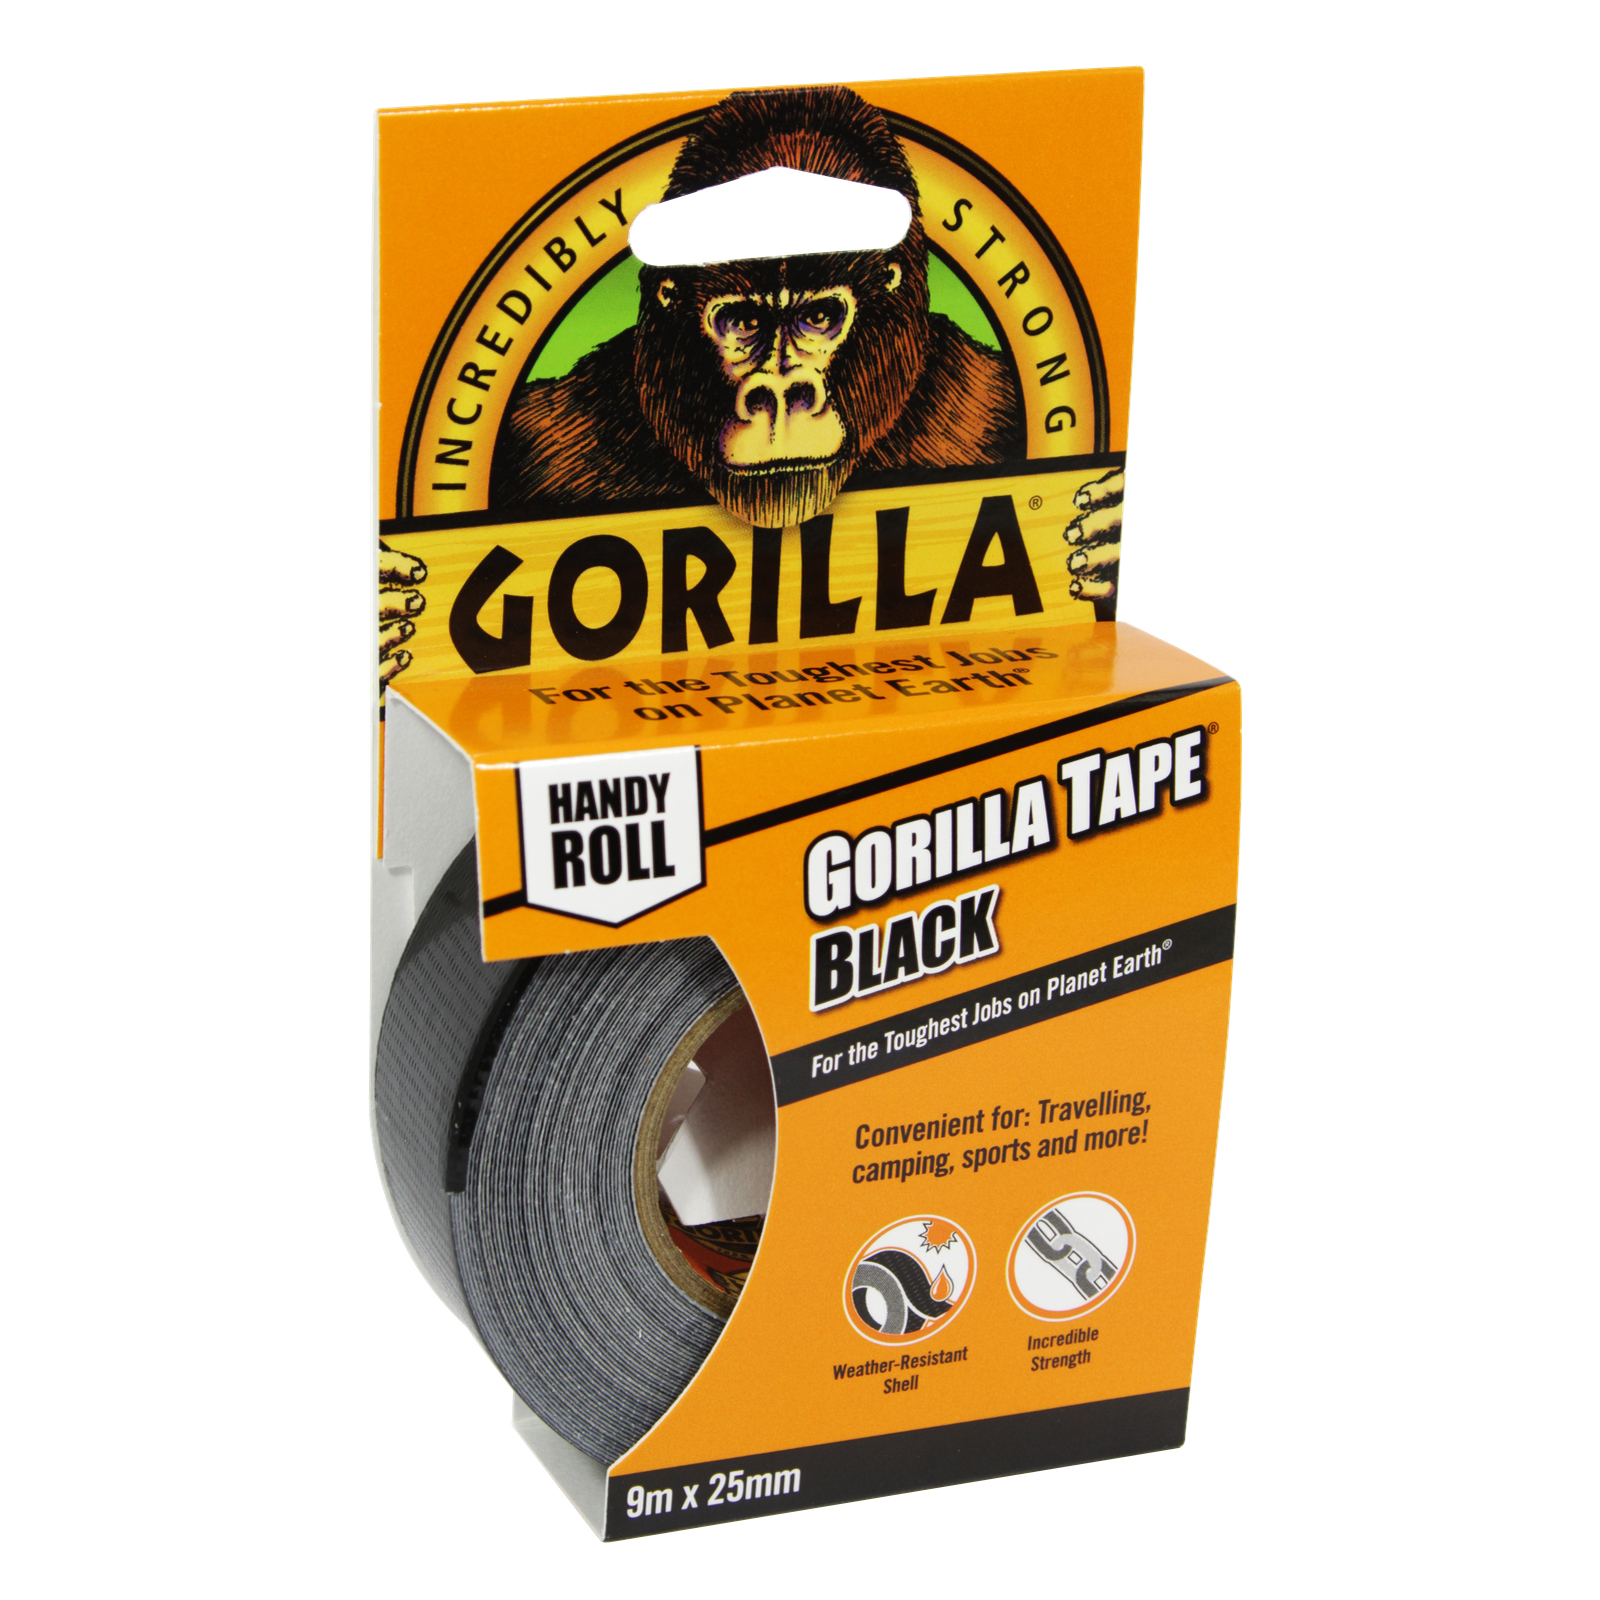 GORILLA TAPE HANDY ROLL 9M BLACK